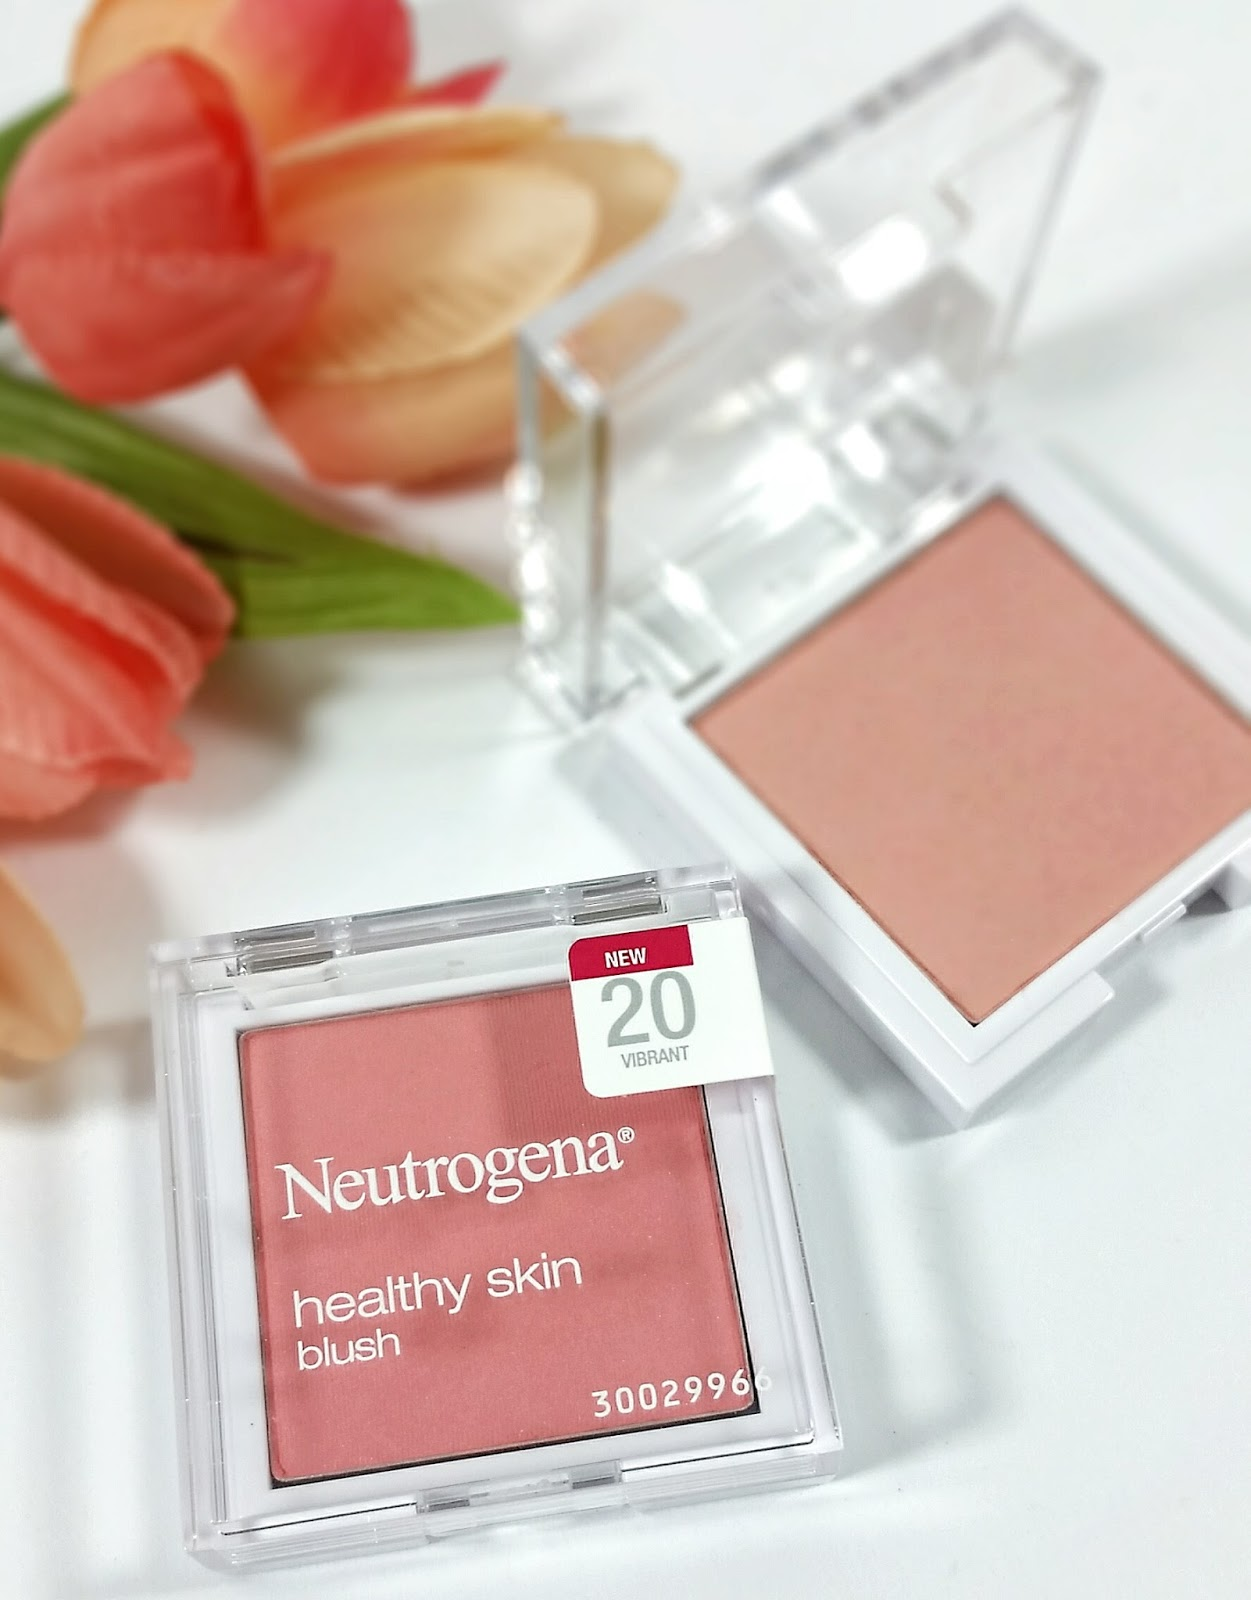 Neutrogena Healthy Skin Blush Review & Swatches